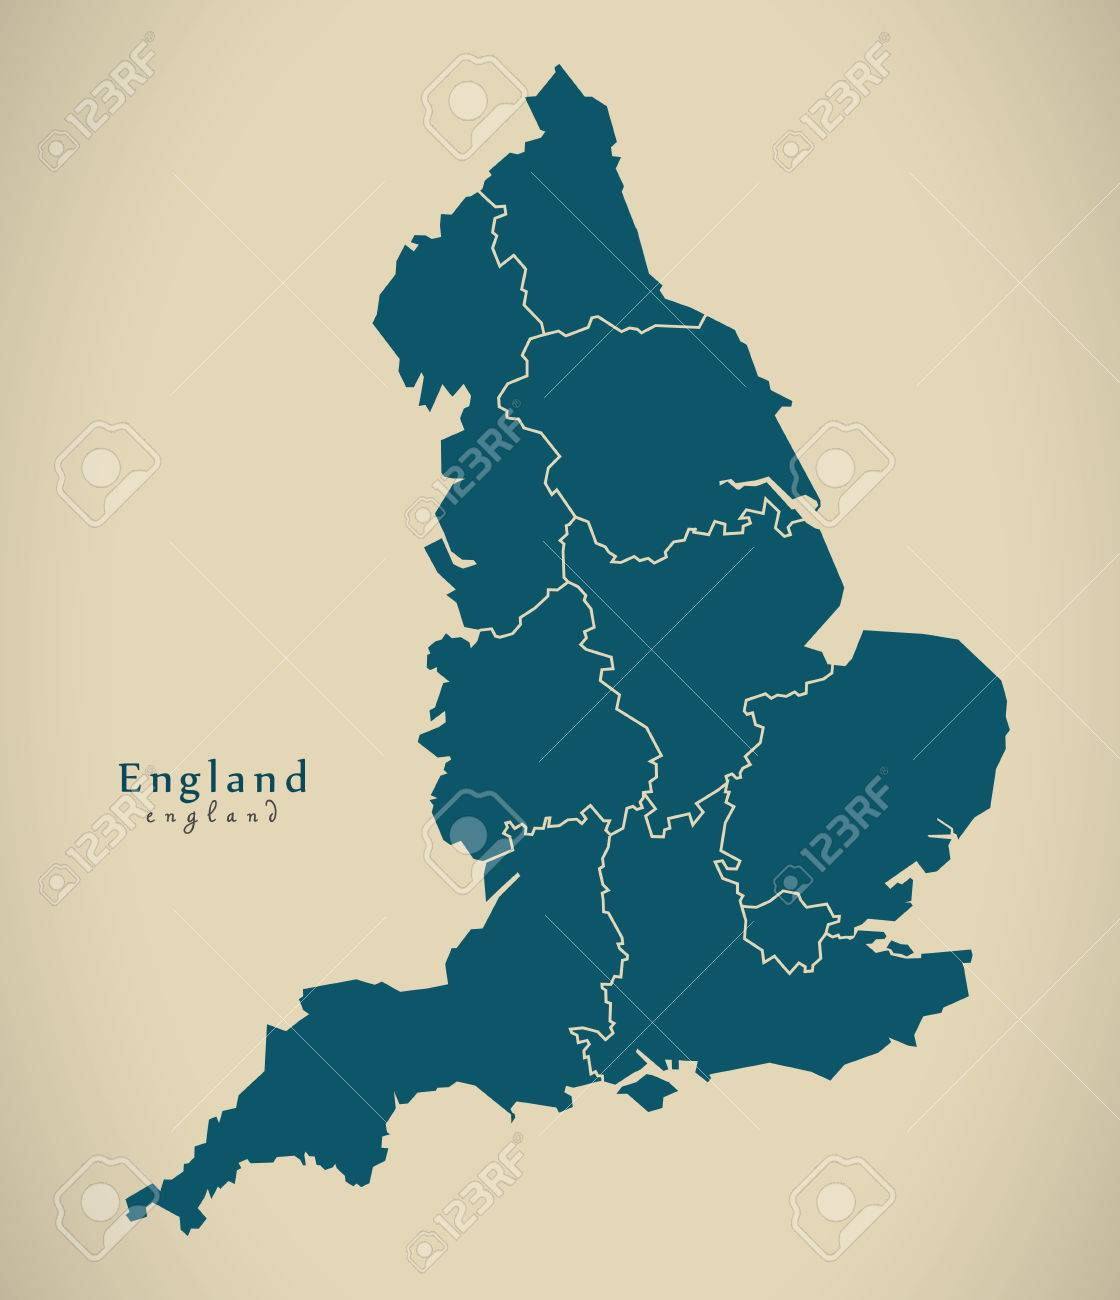 Map Of England With Counties.Modern Map England With Counties Uk Illustration Stock Photo